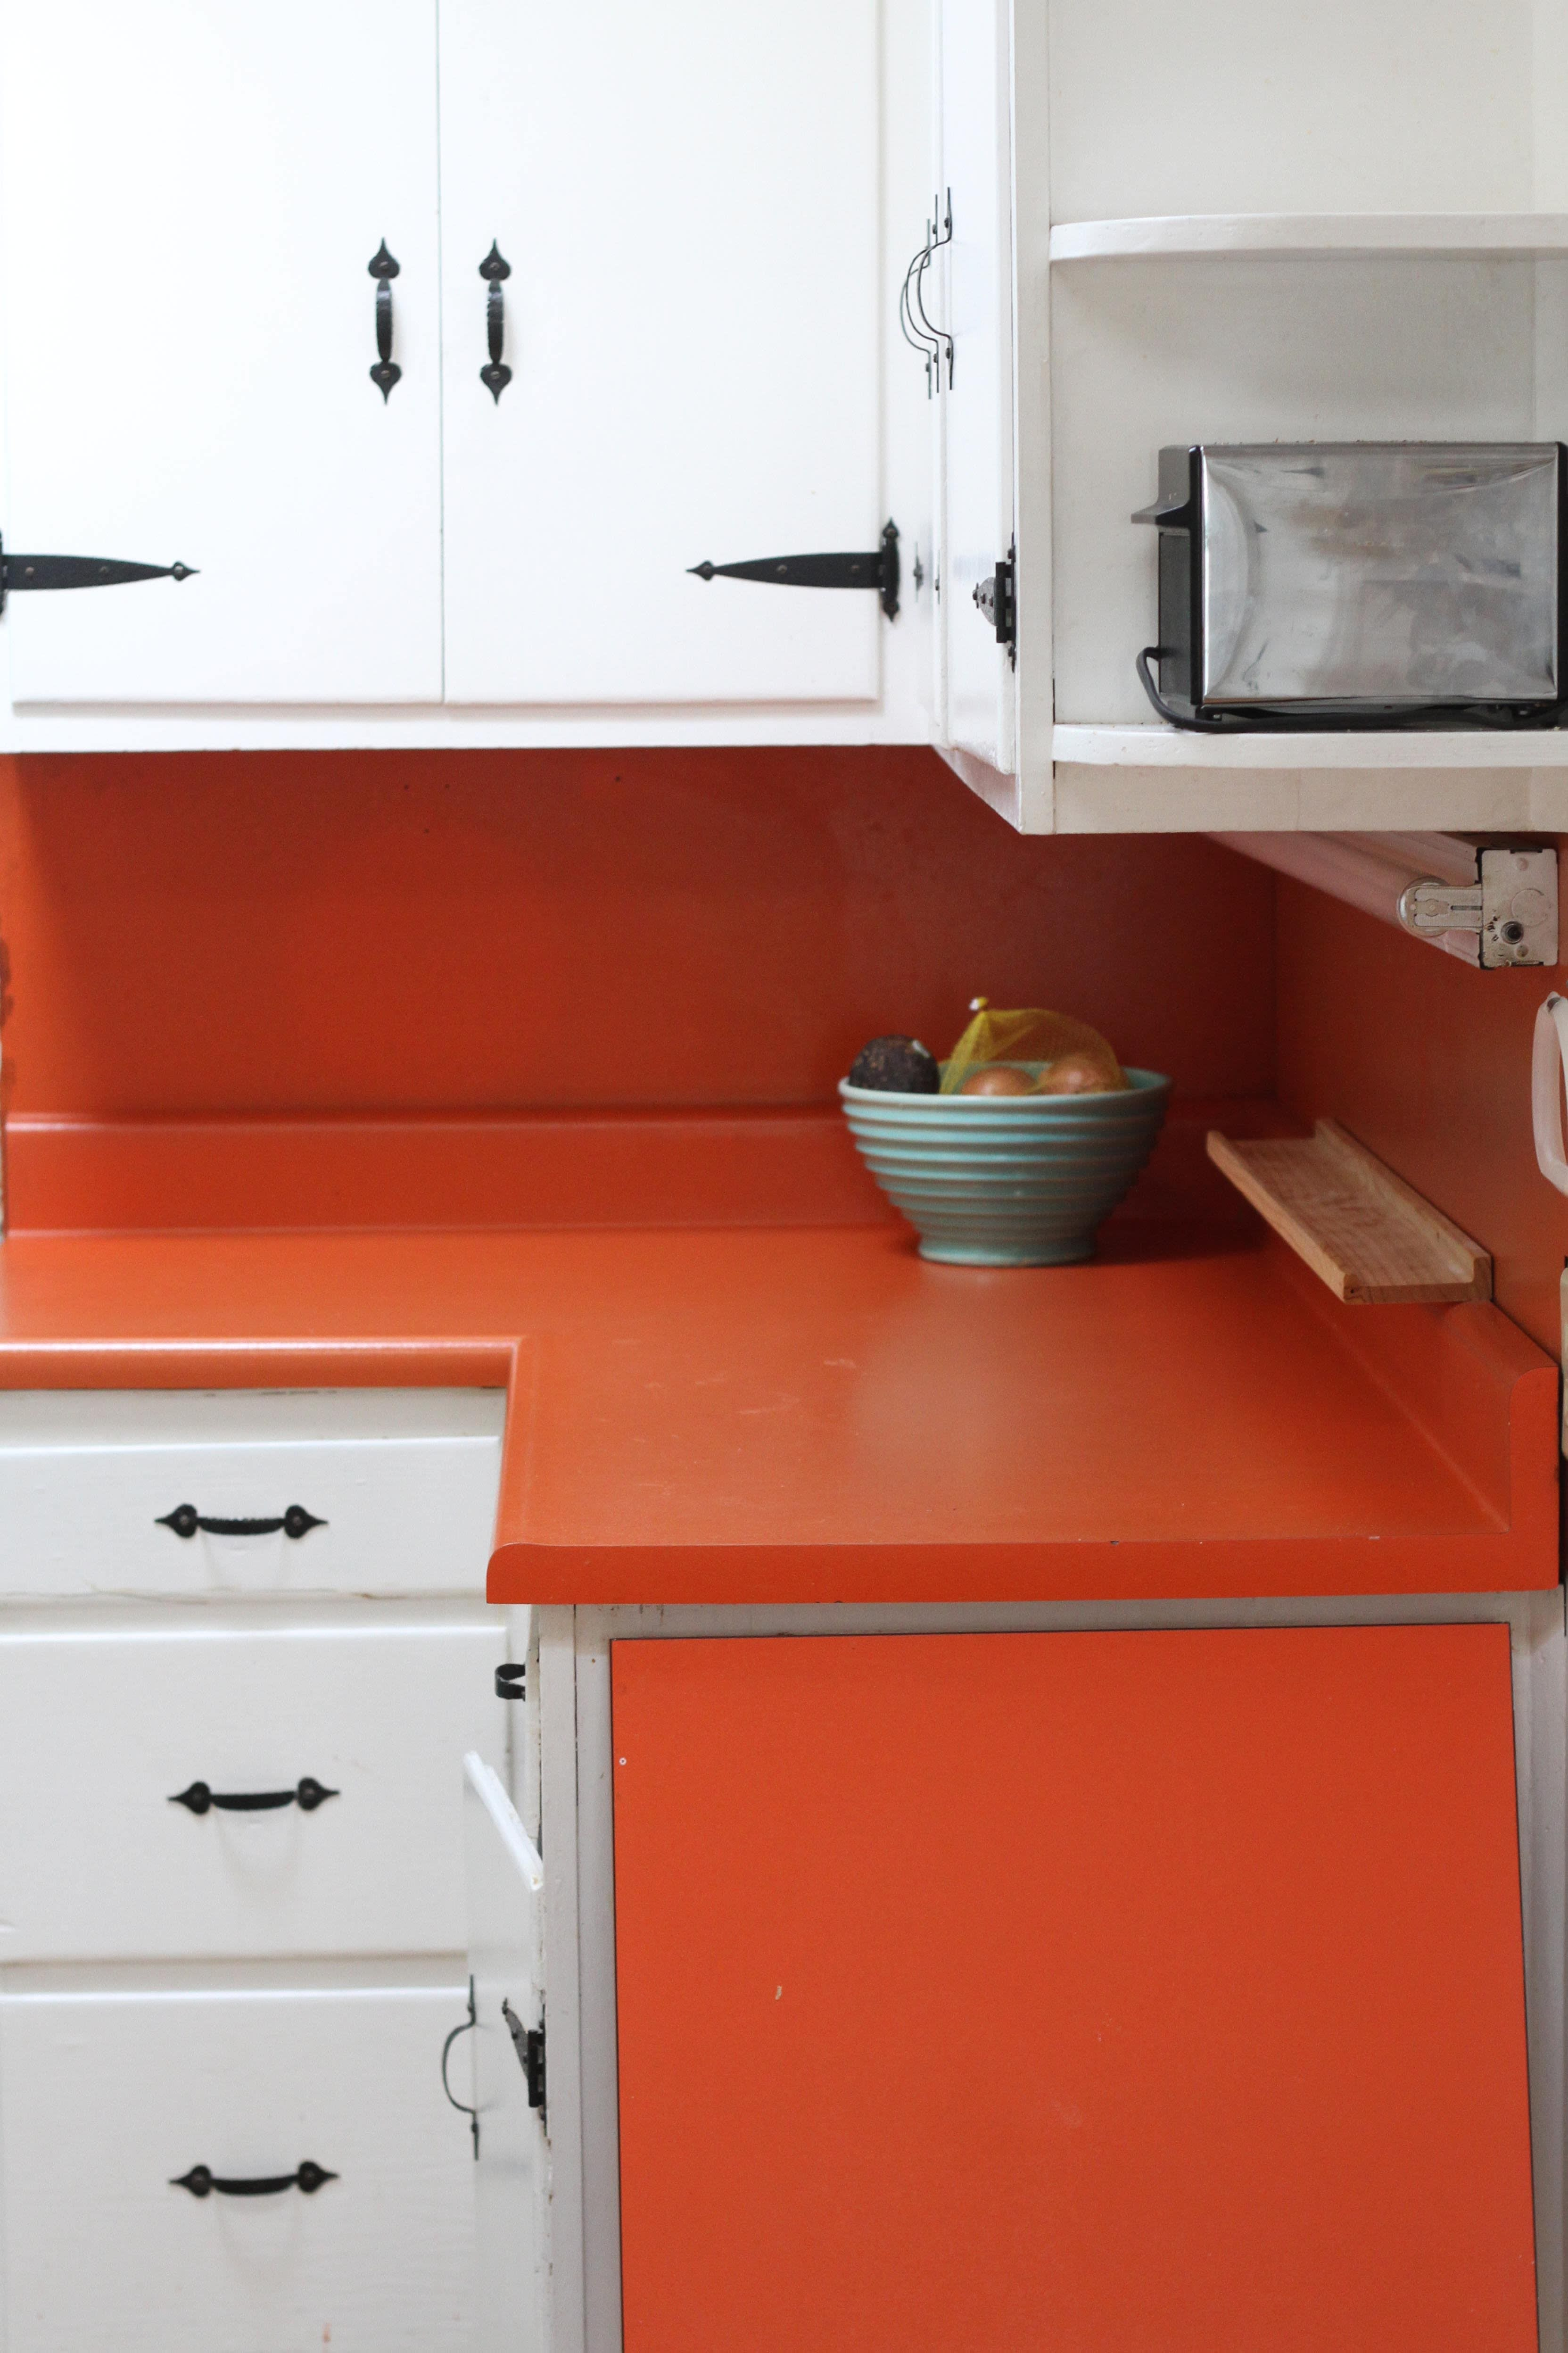 How To Paint Laminate Countertops Apartment Therapy